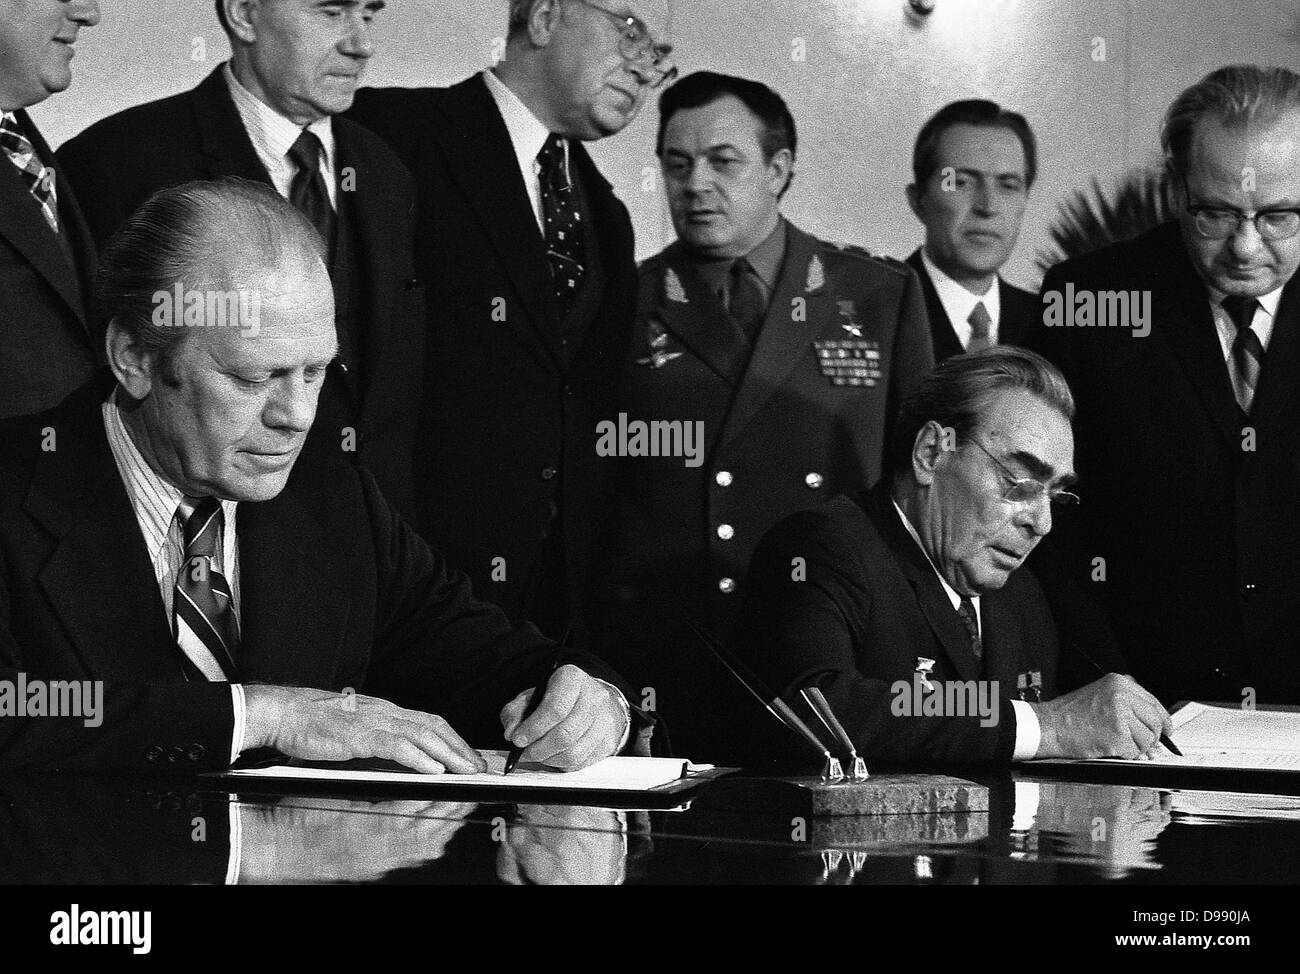 President Gerald Ford and Soviet General Secretary Leonid Brezhnev sign a Joint Communiqué following talks - Stock Image